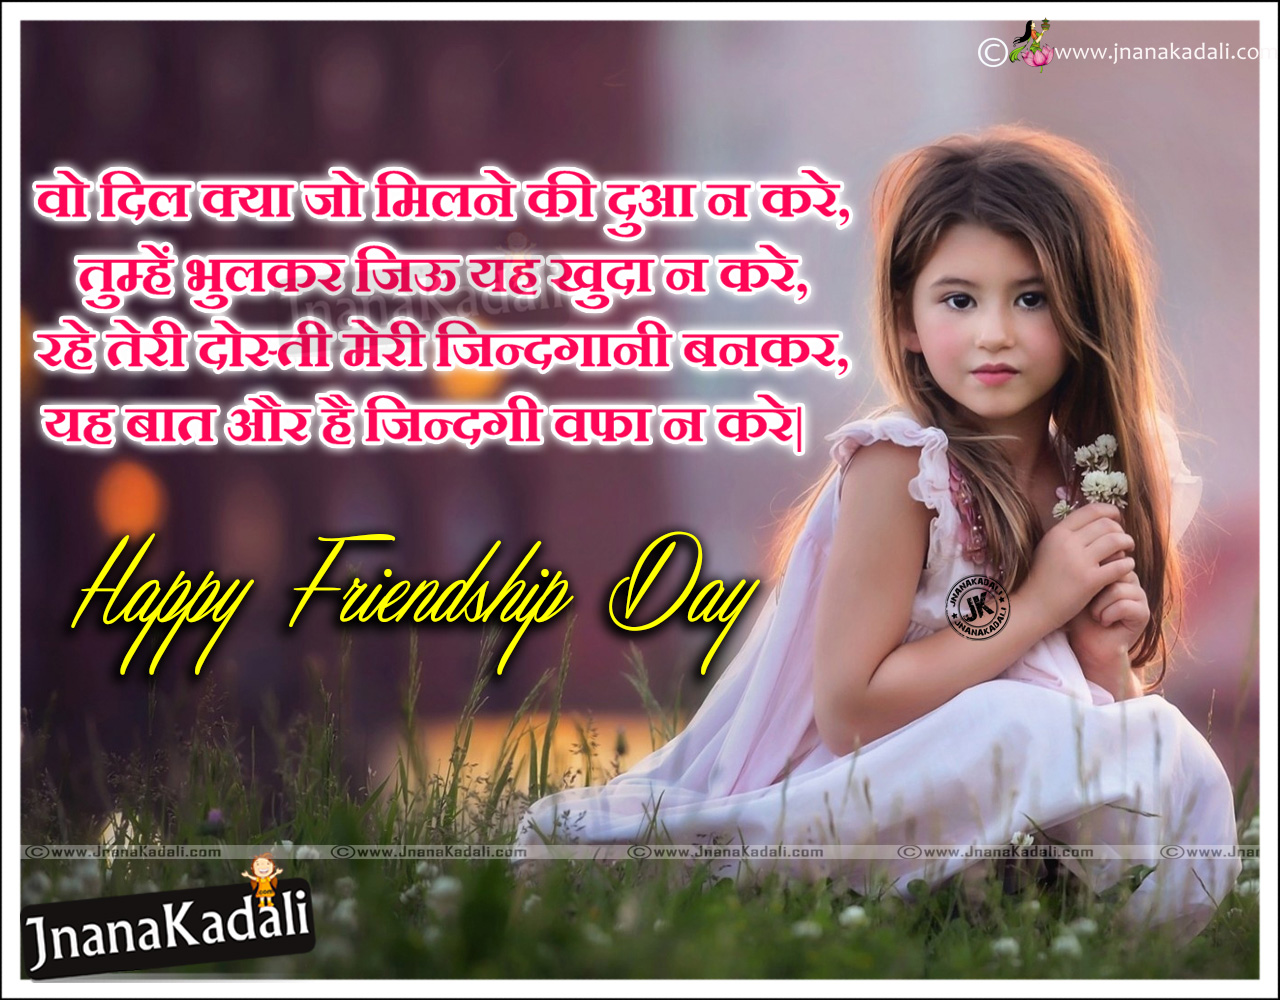 Hindi Friendship Day Sheyari Dosthi Wishes Quotes In Hindi Cute